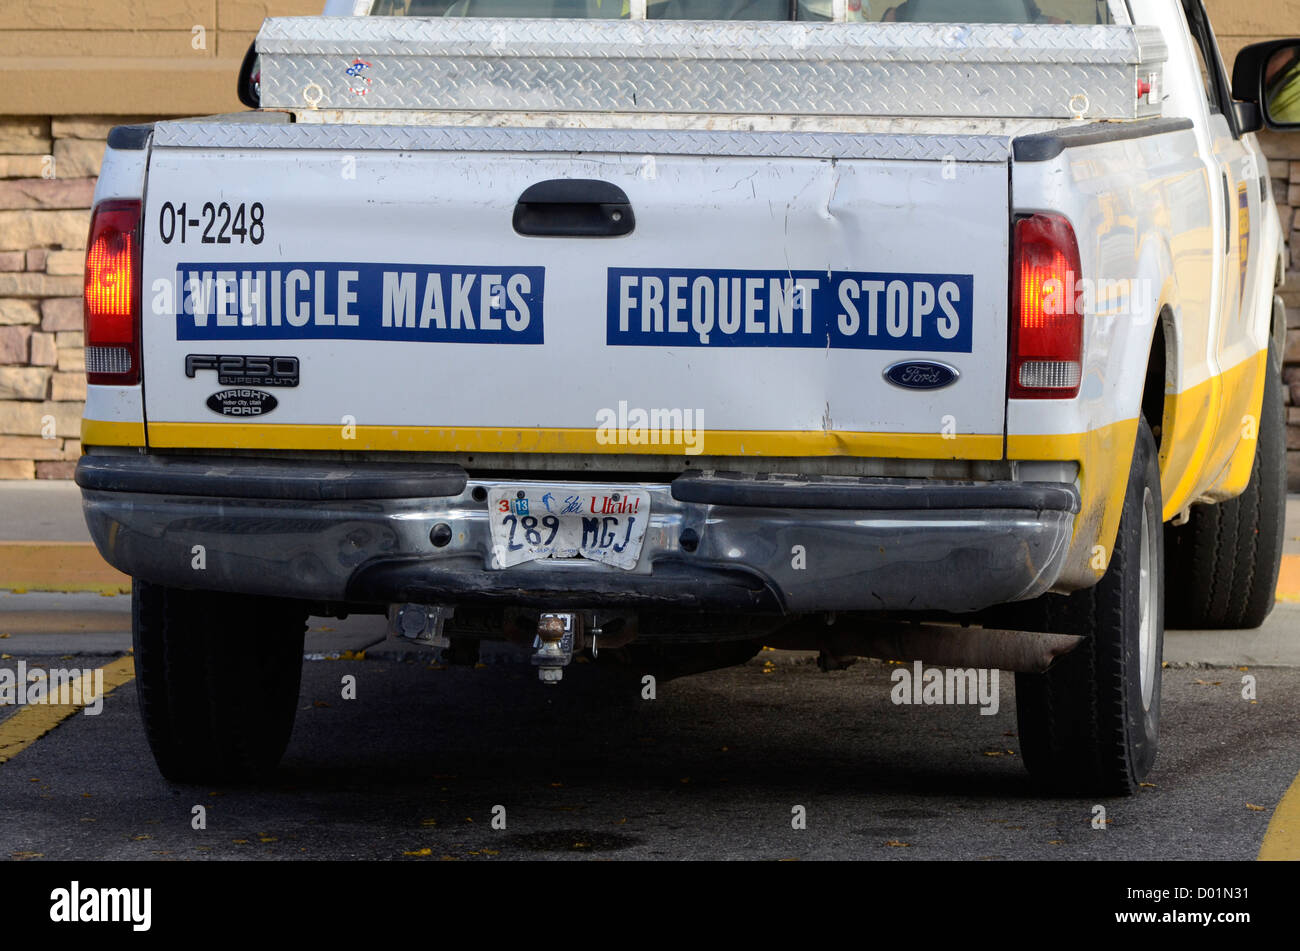 Dented truck with 'Vehicle Makes Frequent Stops' sign. - Stock Image